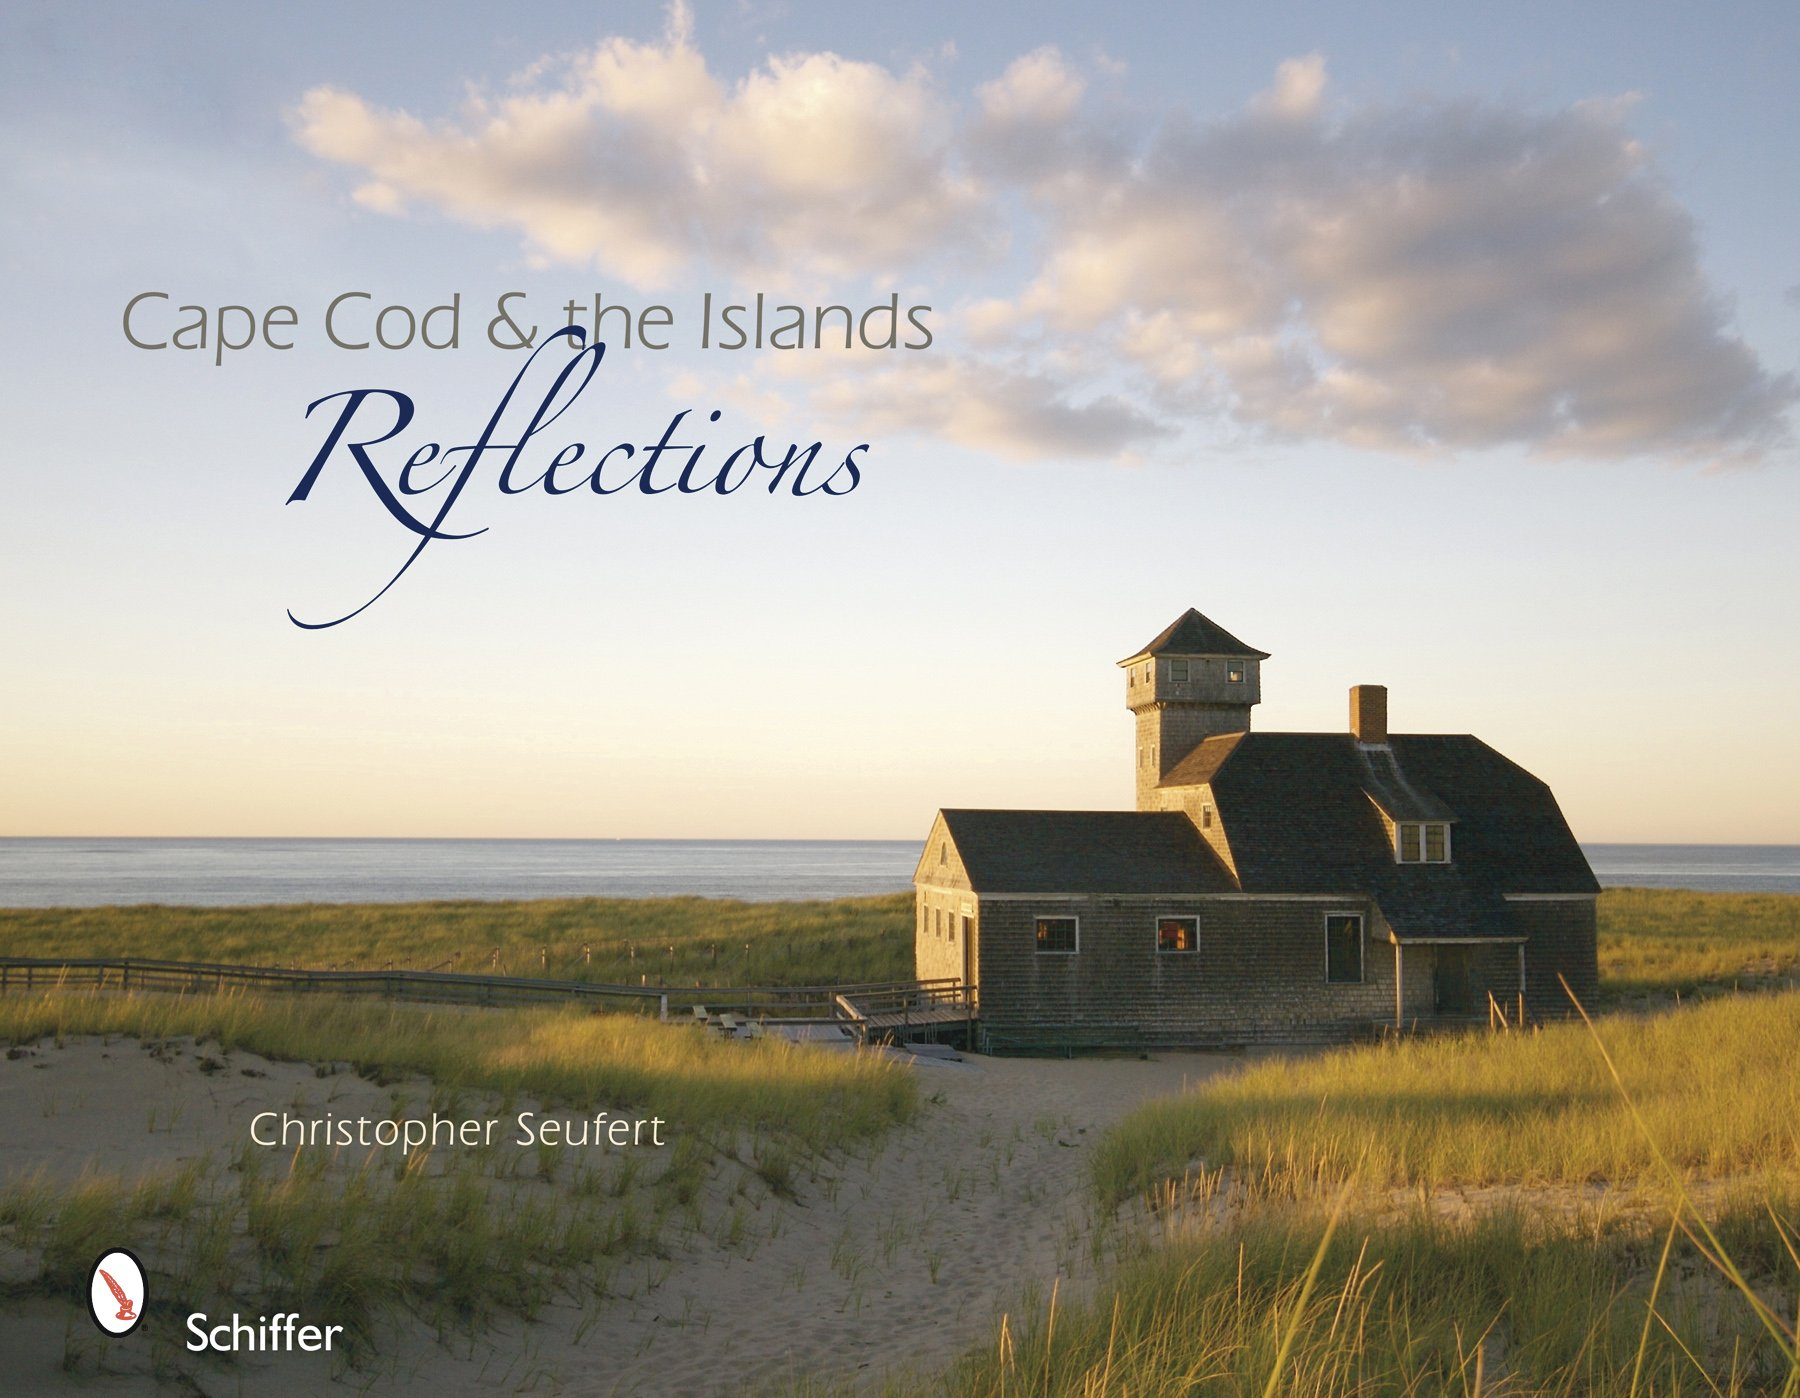 Download Cape Cod & the Islands Reflections ebook